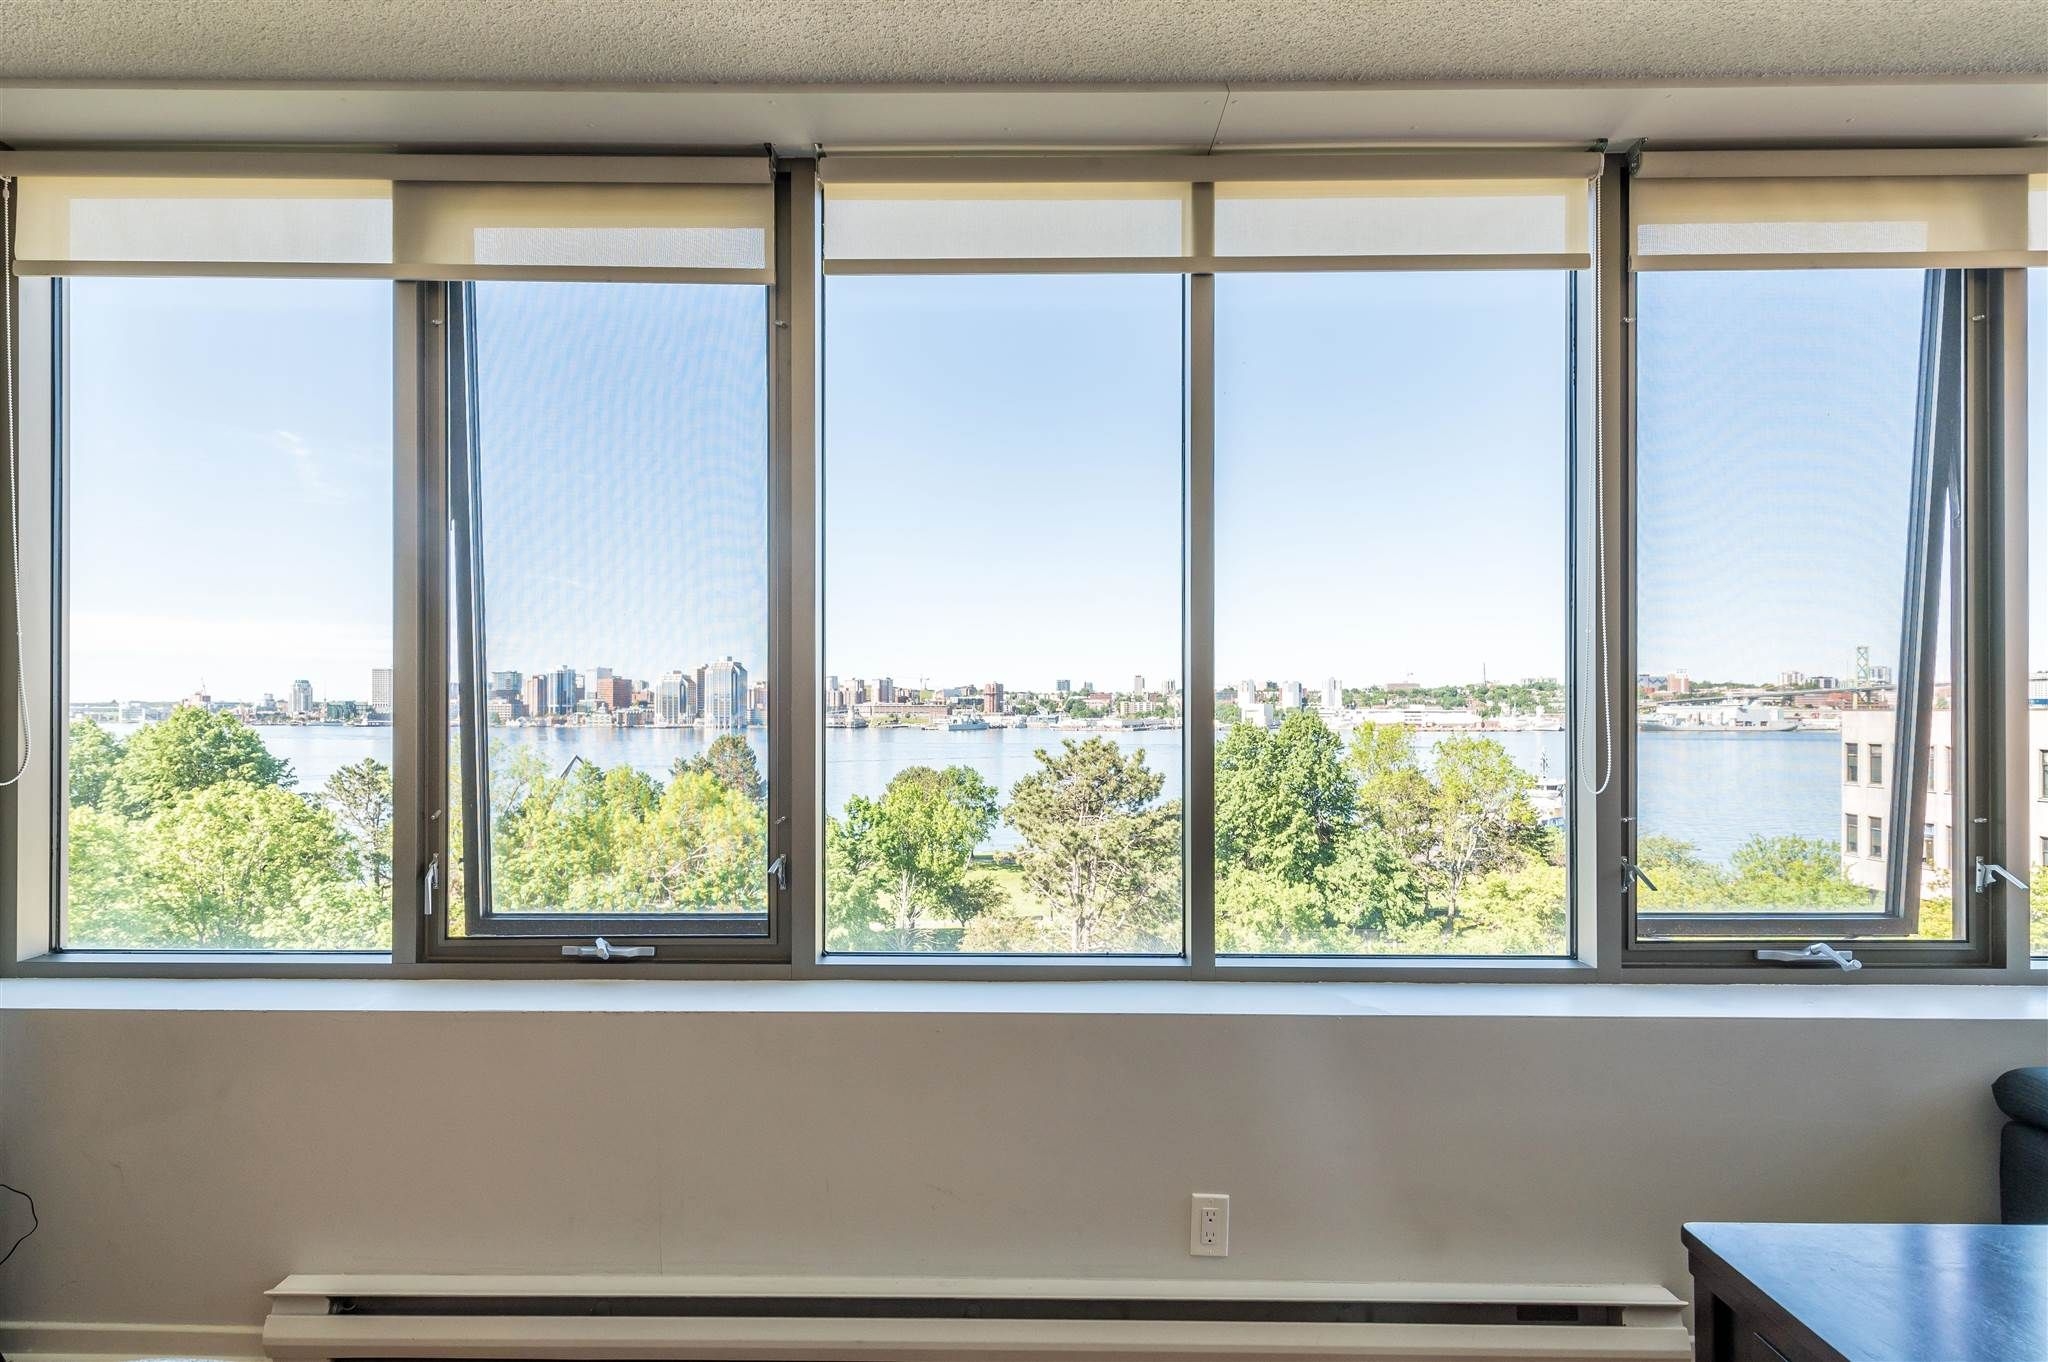 Main Photo: 305 1 Prince Street in Dartmouth: 10-Dartmouth Downtown To Burnside Residential for sale (Halifax-Dartmouth)  : MLS®# 202115623